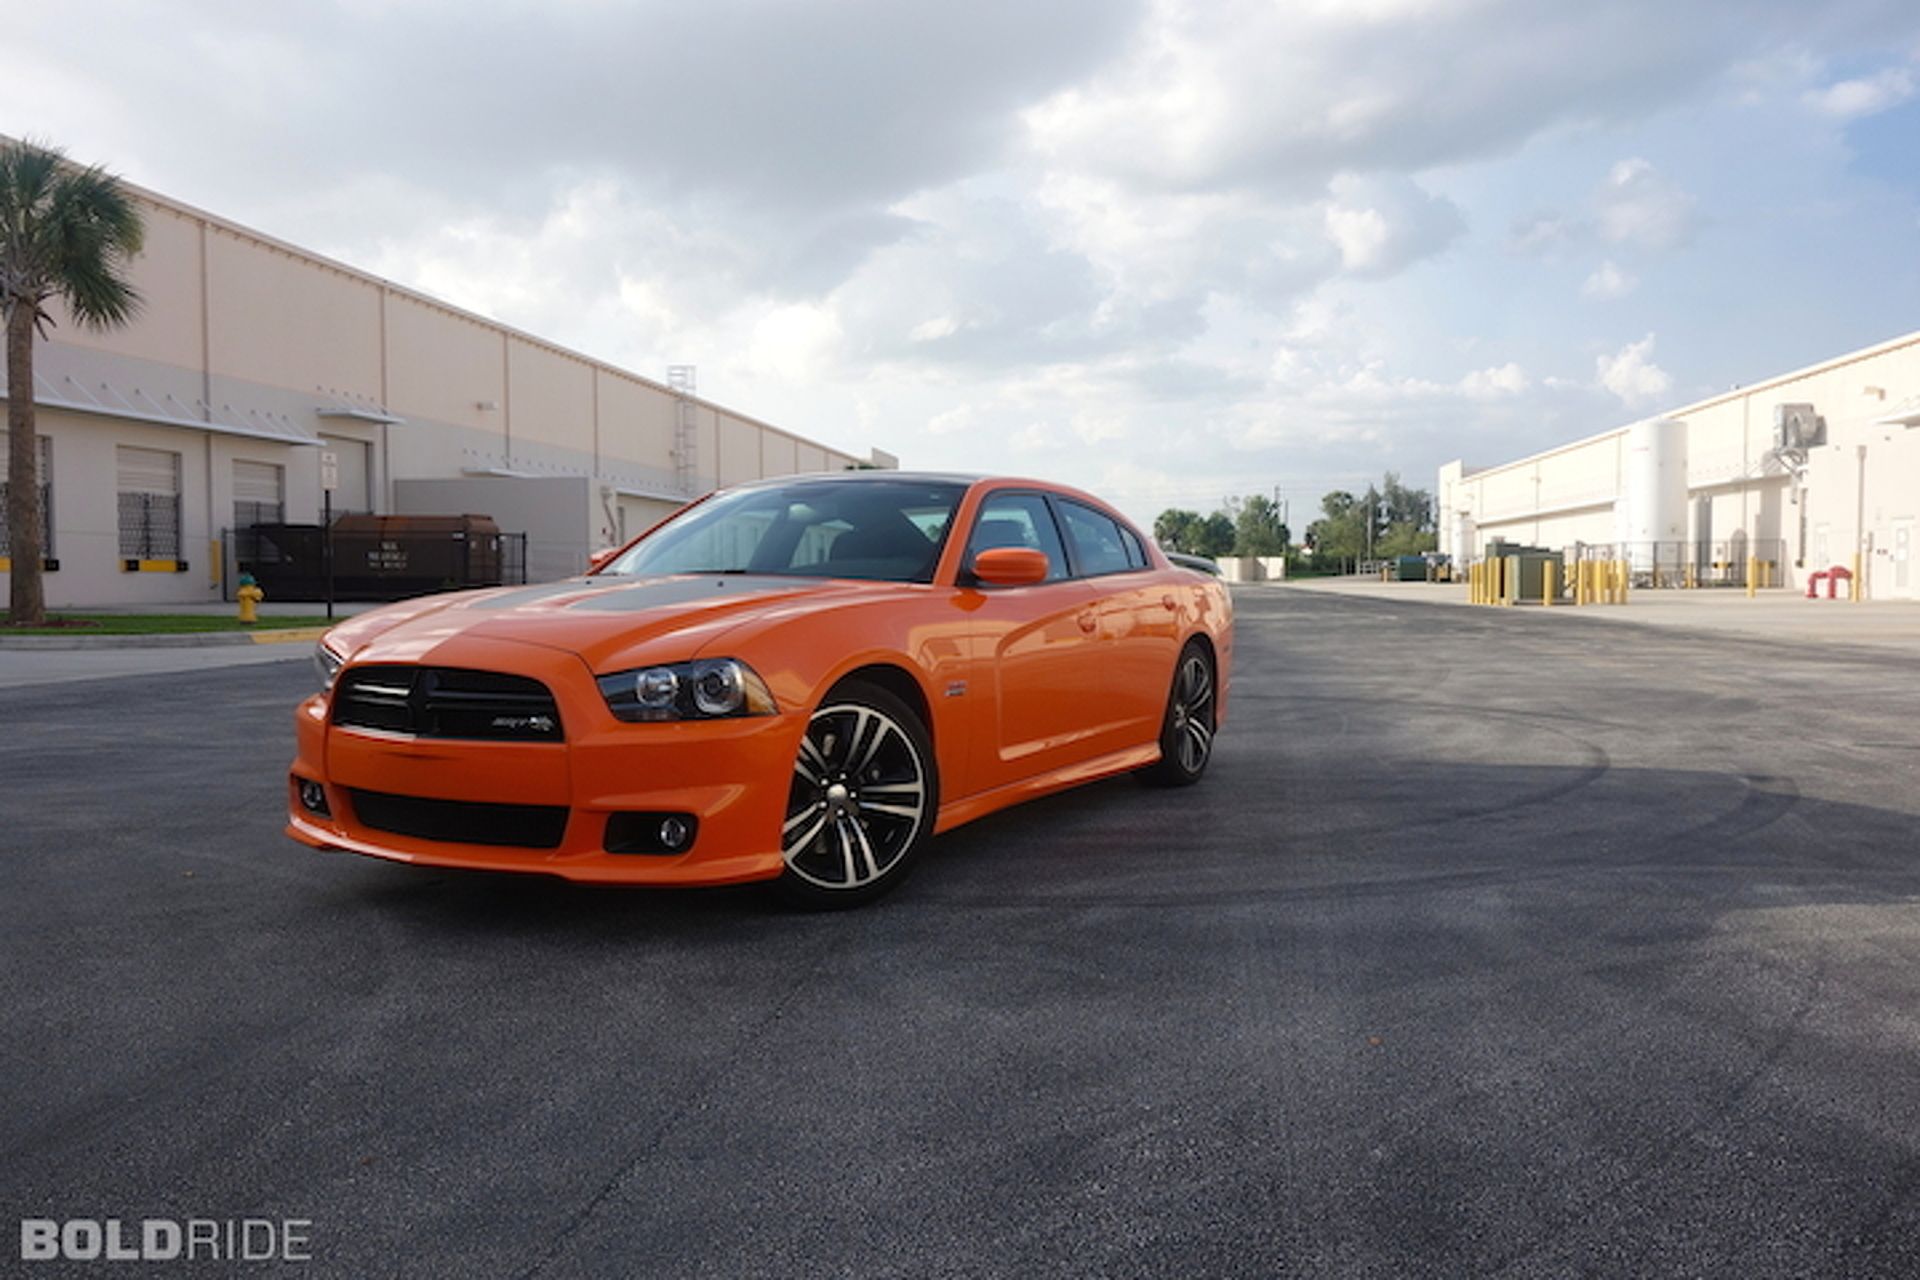 2014 Dodge Charger SRT Super Bee Review: A Big, American